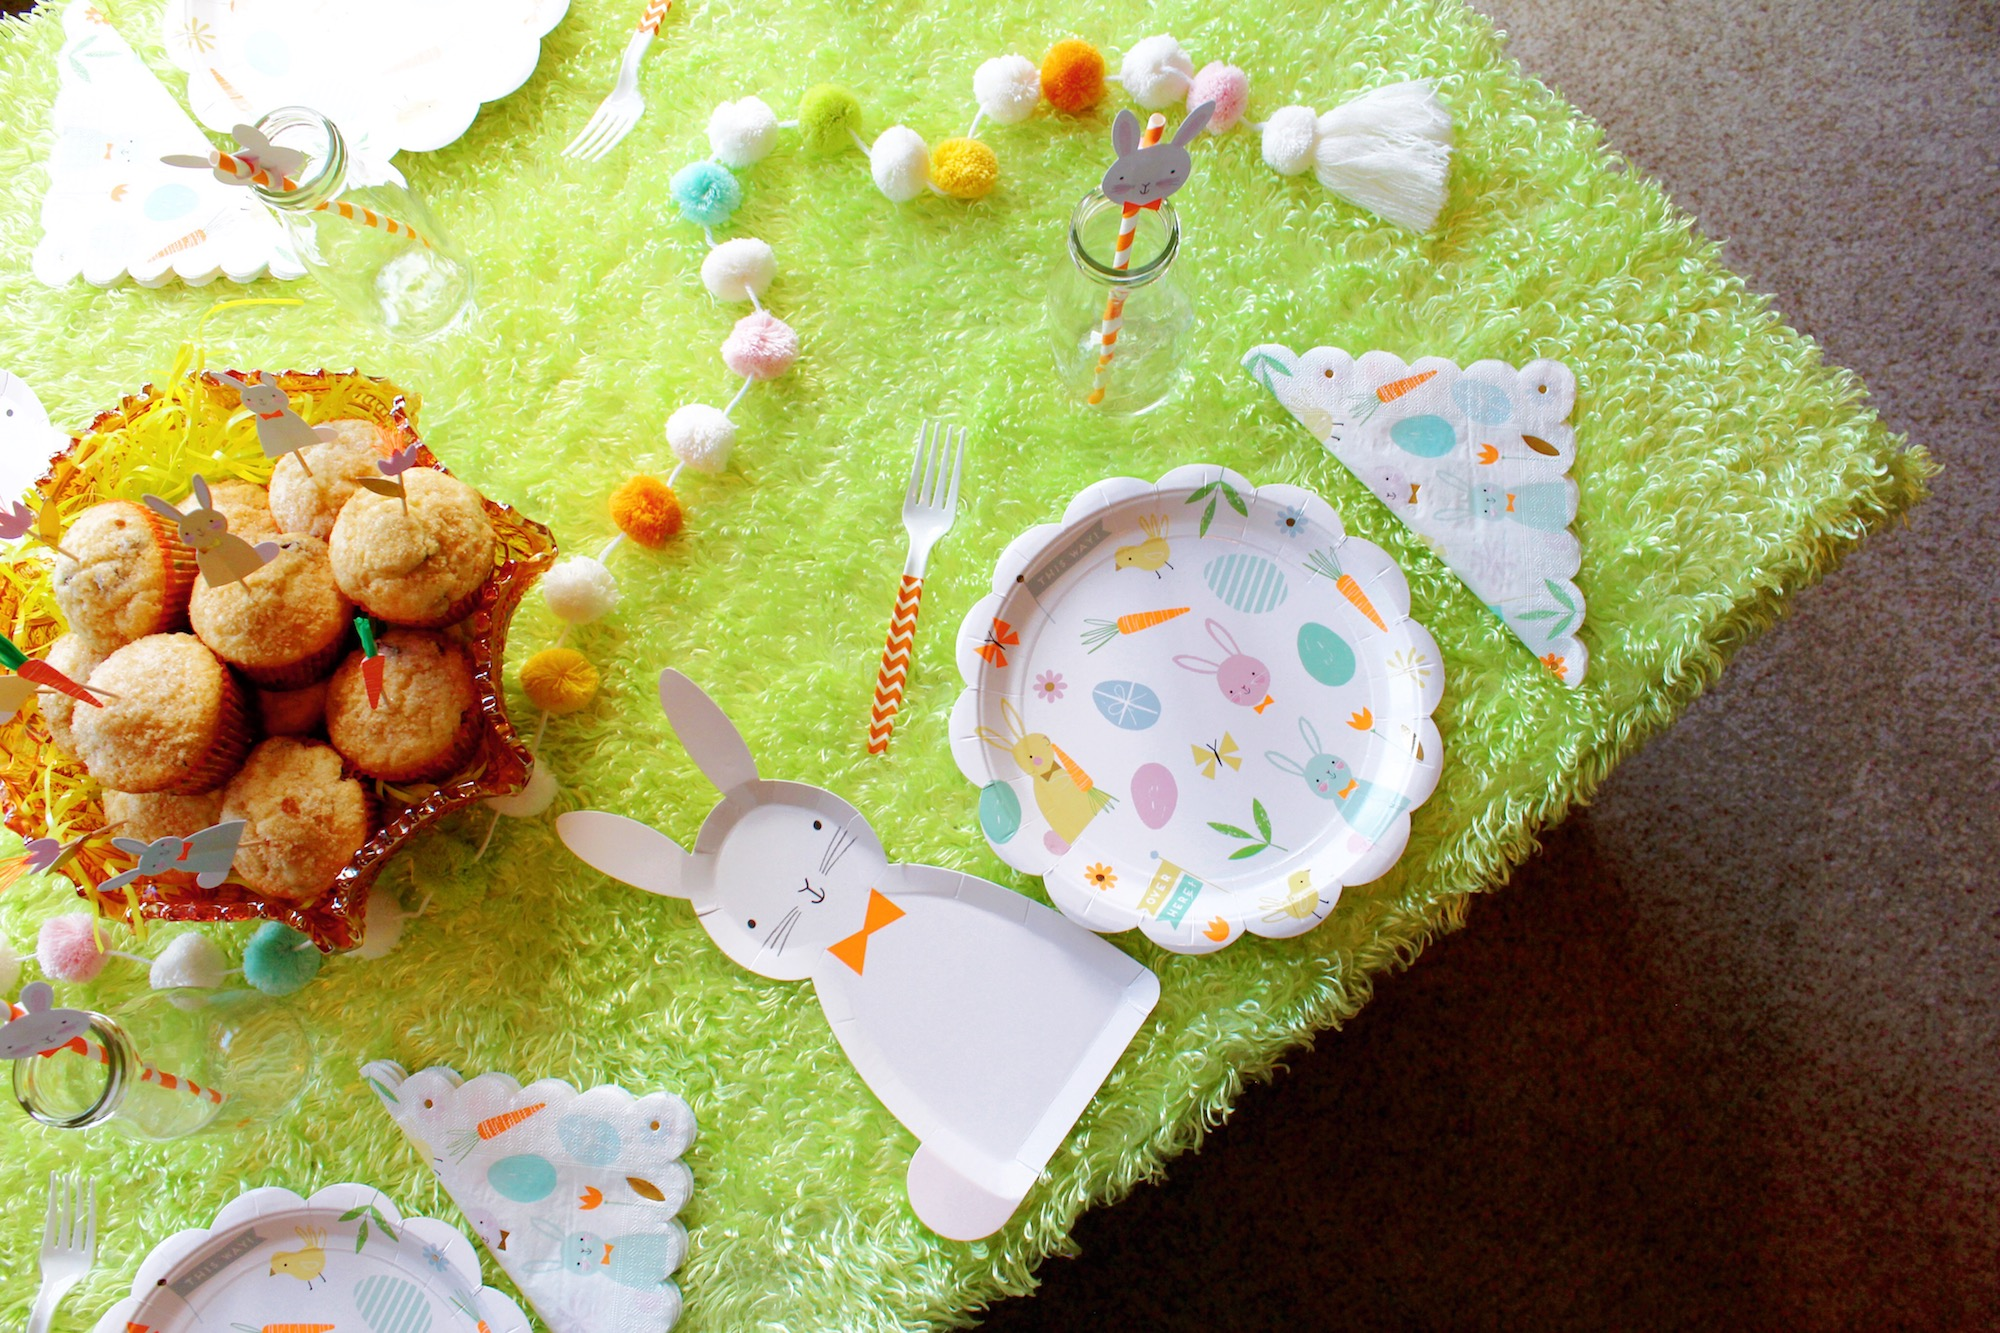 Easter Morning Breakfast_Egg Hunt Place Setting_Bunny_Design Organize Part.JPG